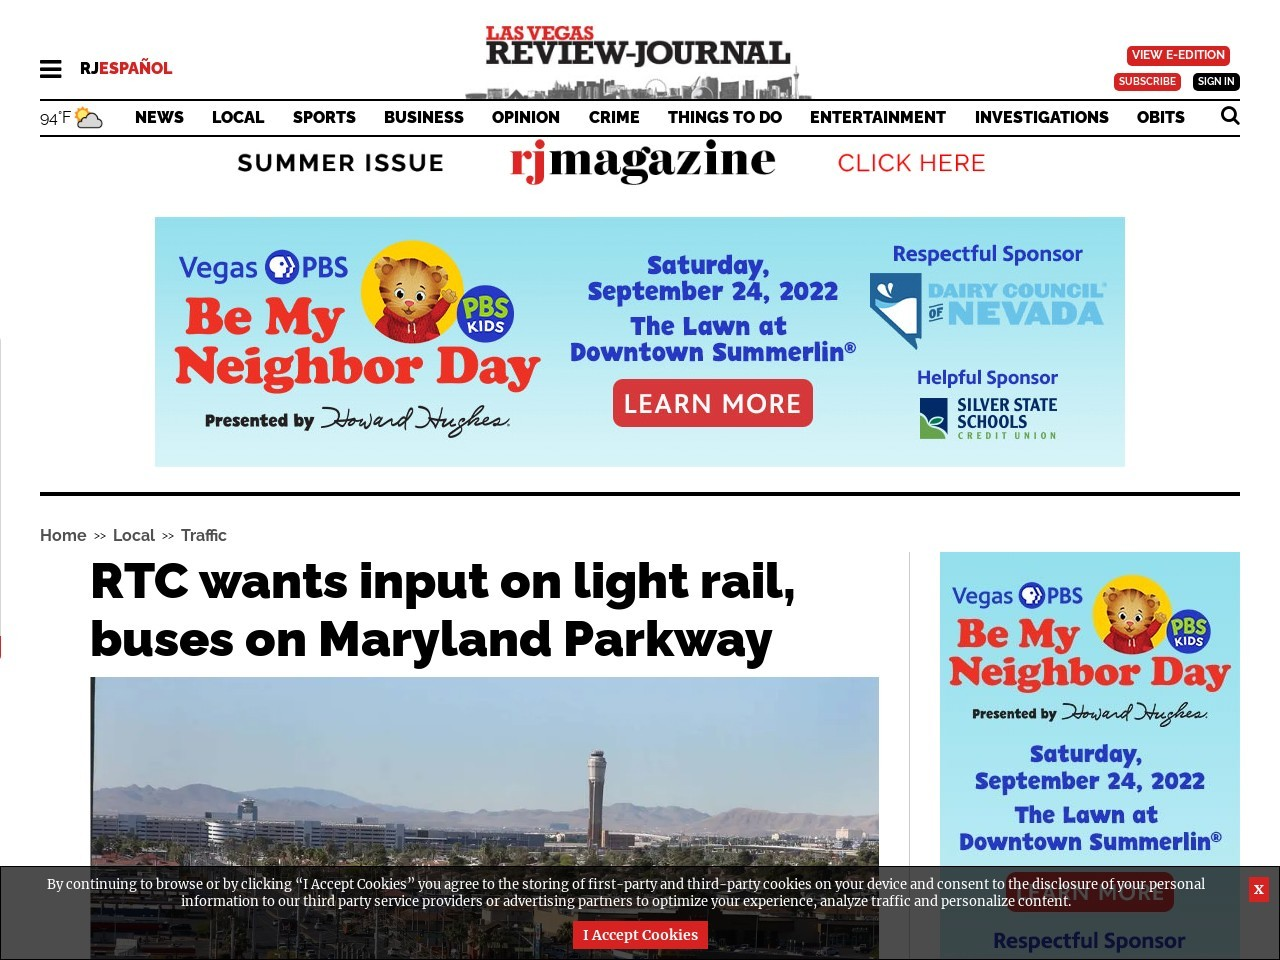 Light rail or buses on Maryland Parkway? RTC wants input